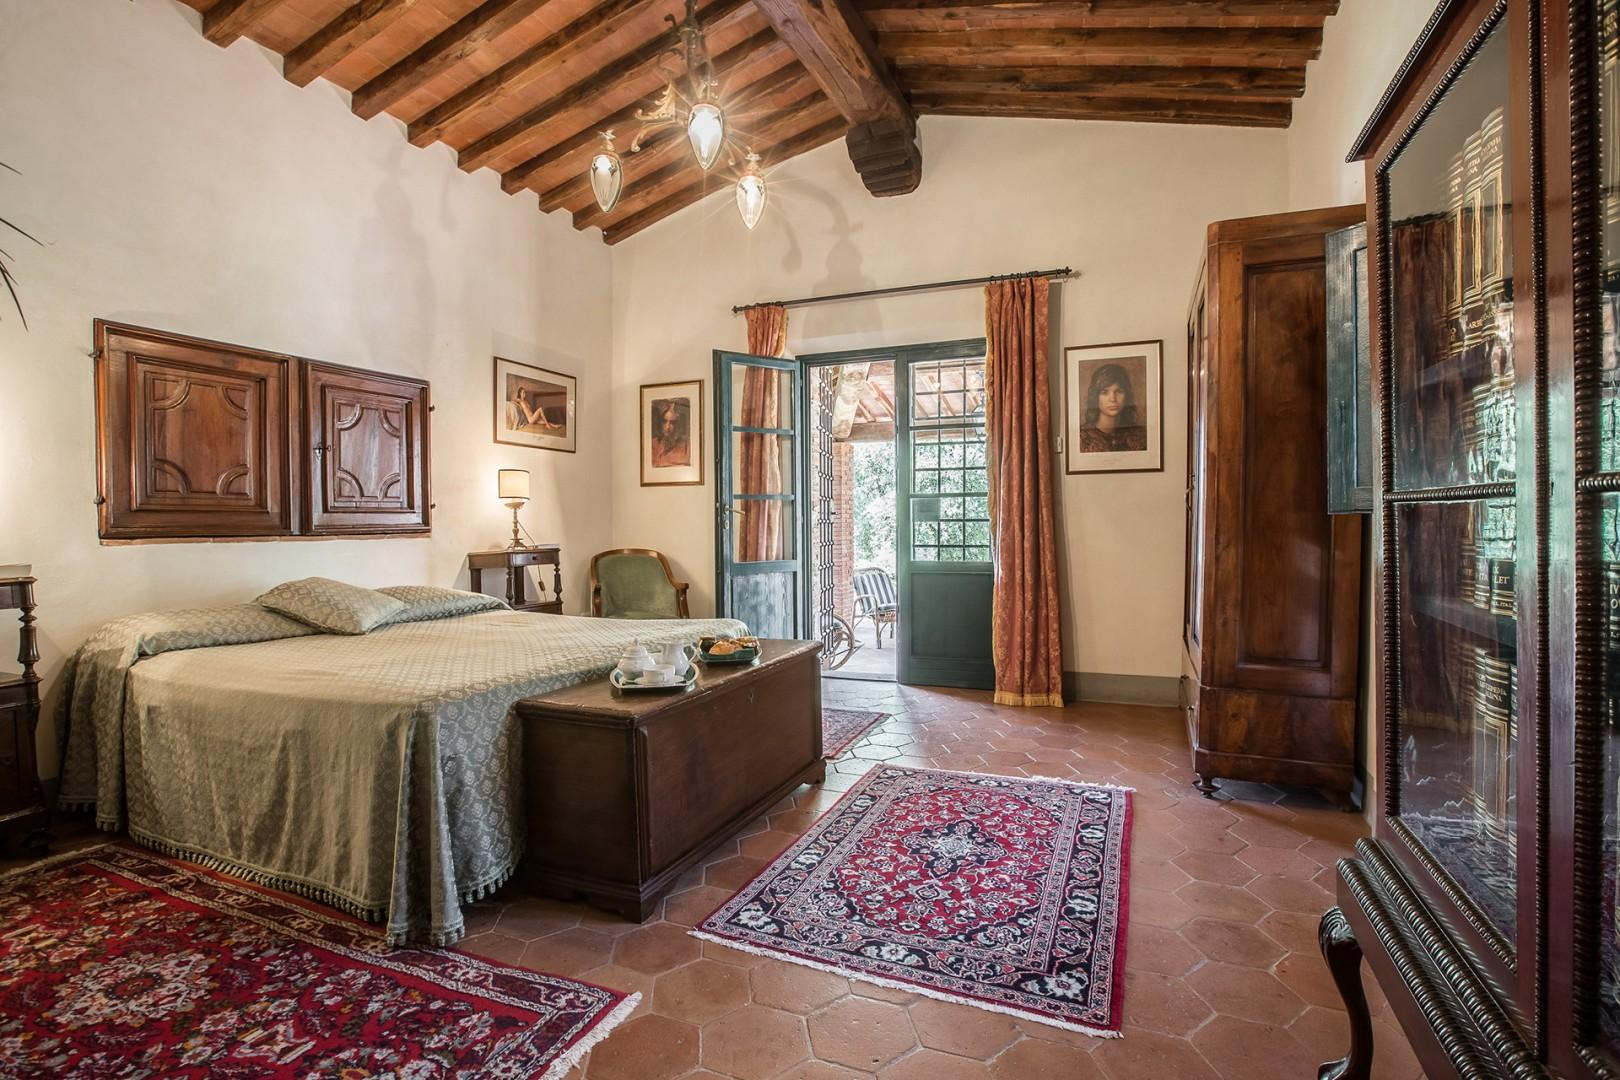 First floor bedroom 4 has French doors out to the terrace.